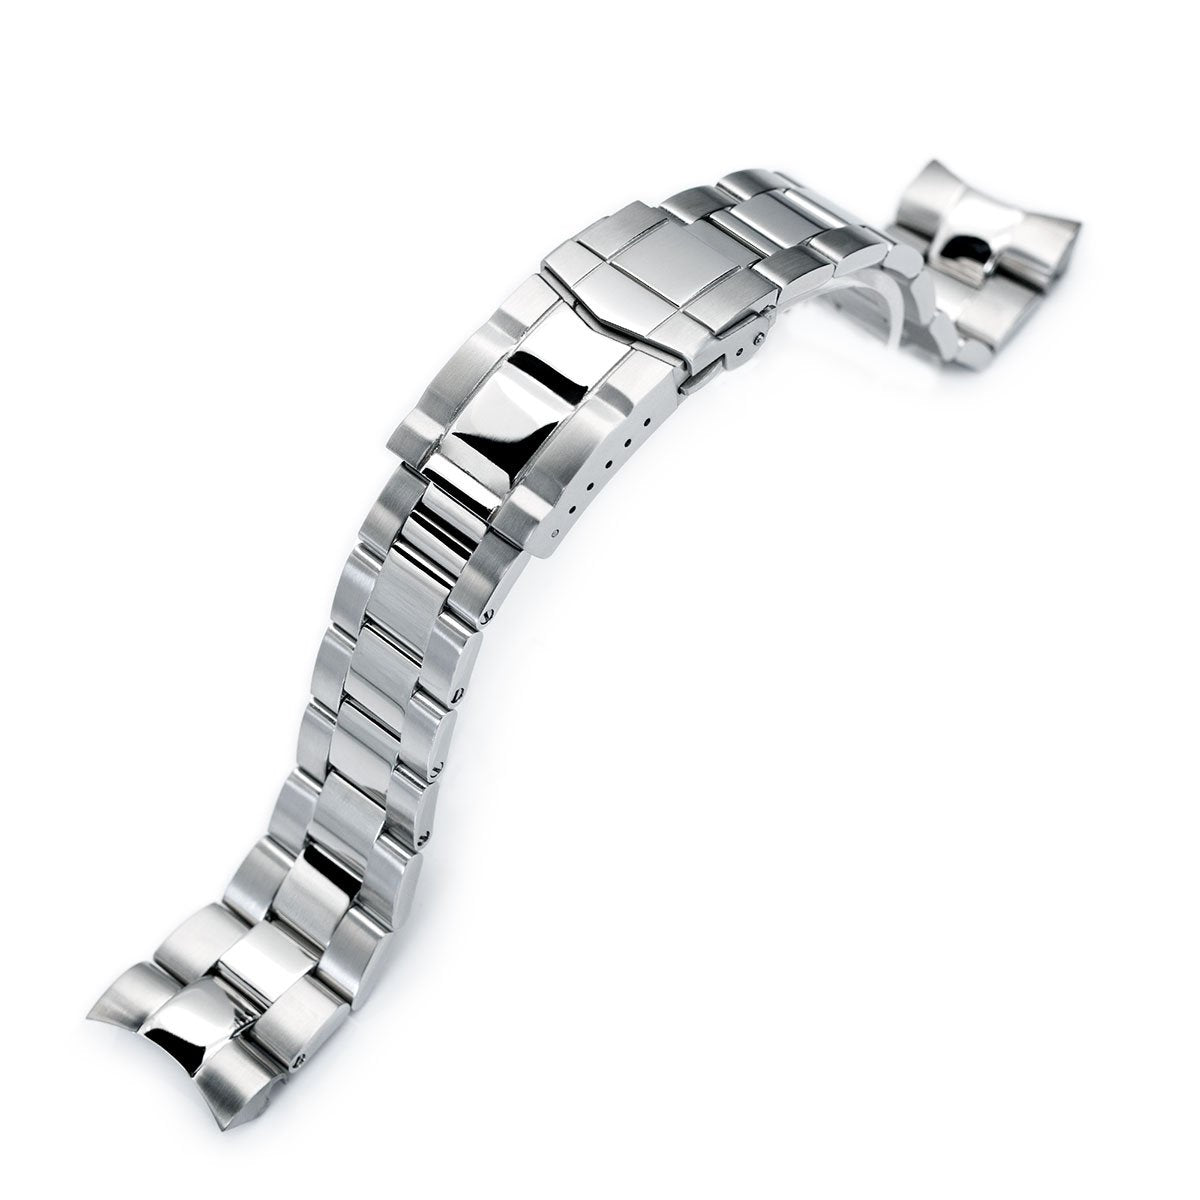 22mm Super-O Boyer 316L Stainless Steel Watch Band for Orient Mako II Ray II Brushed Polished SUB Clasp Strapcode Watch Bands